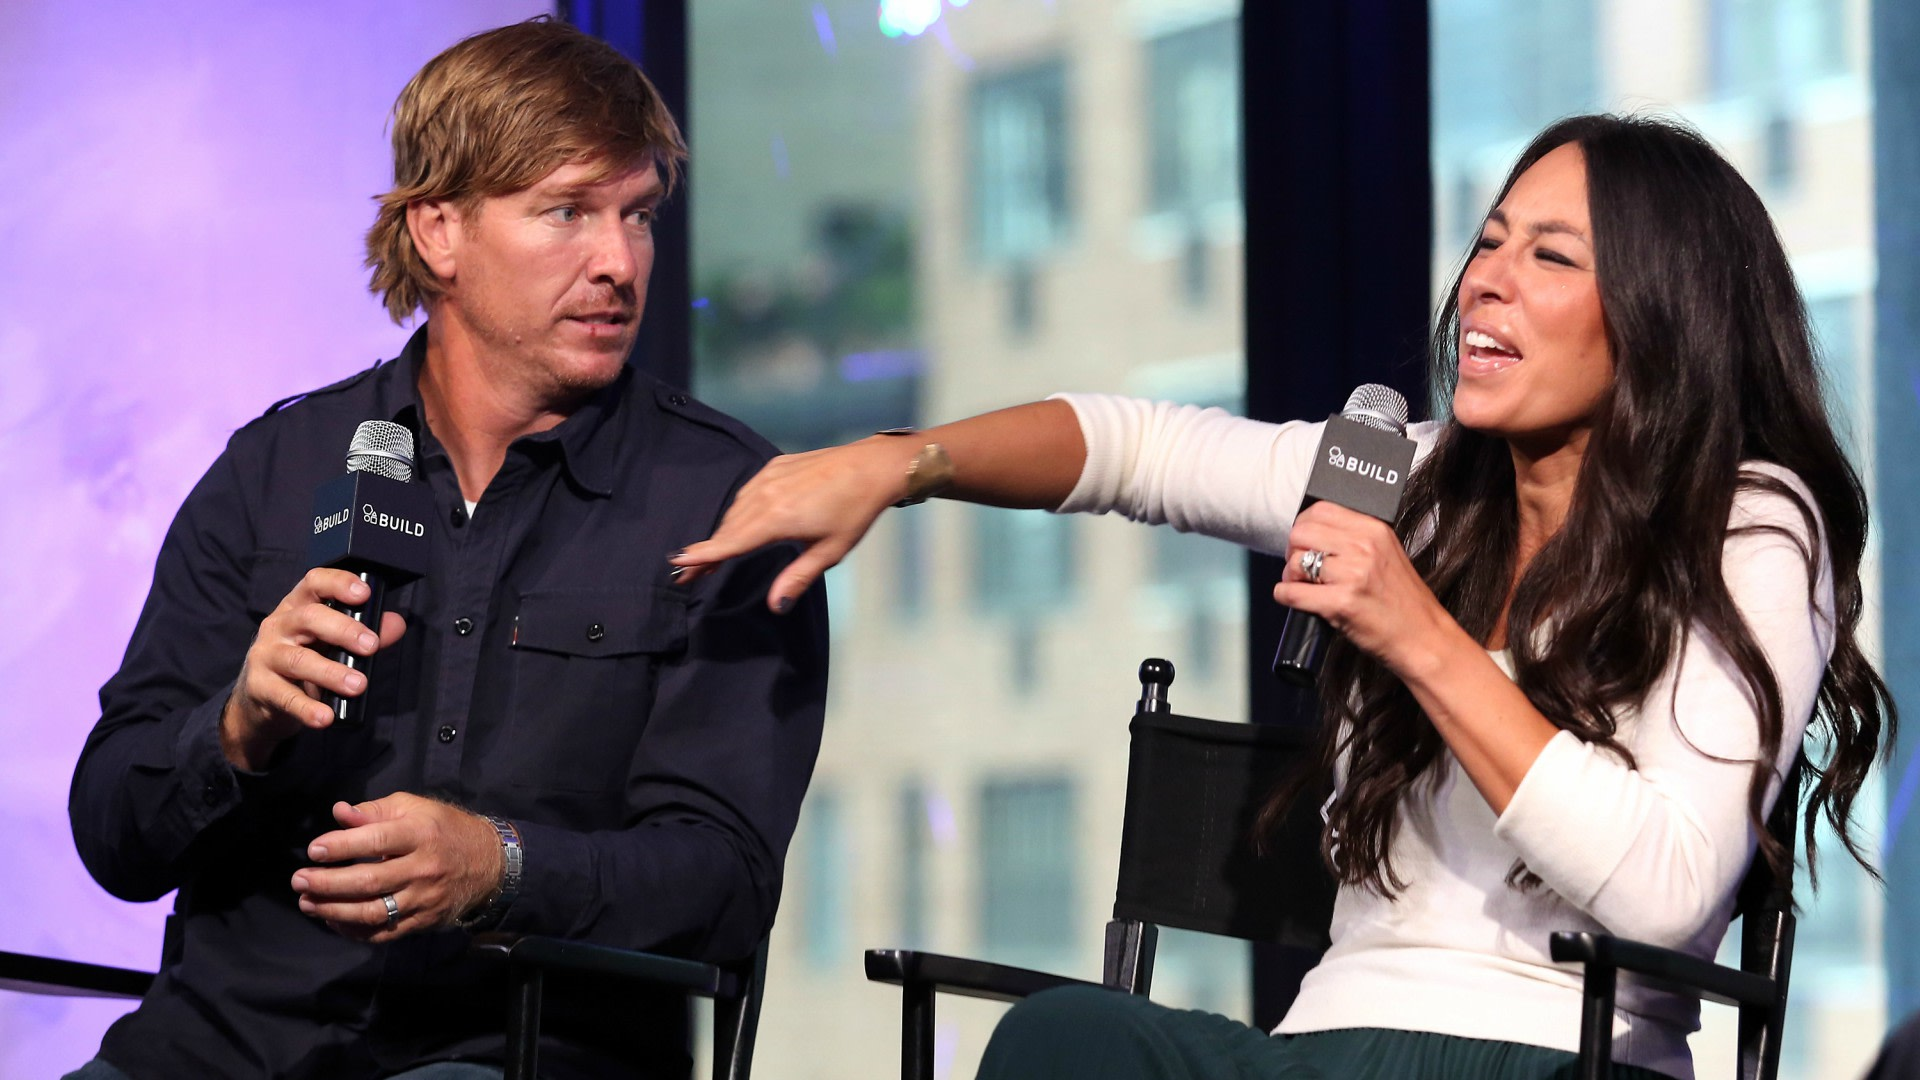 Fans Are Furious About Chip Joanna Gaines Partnership With Target